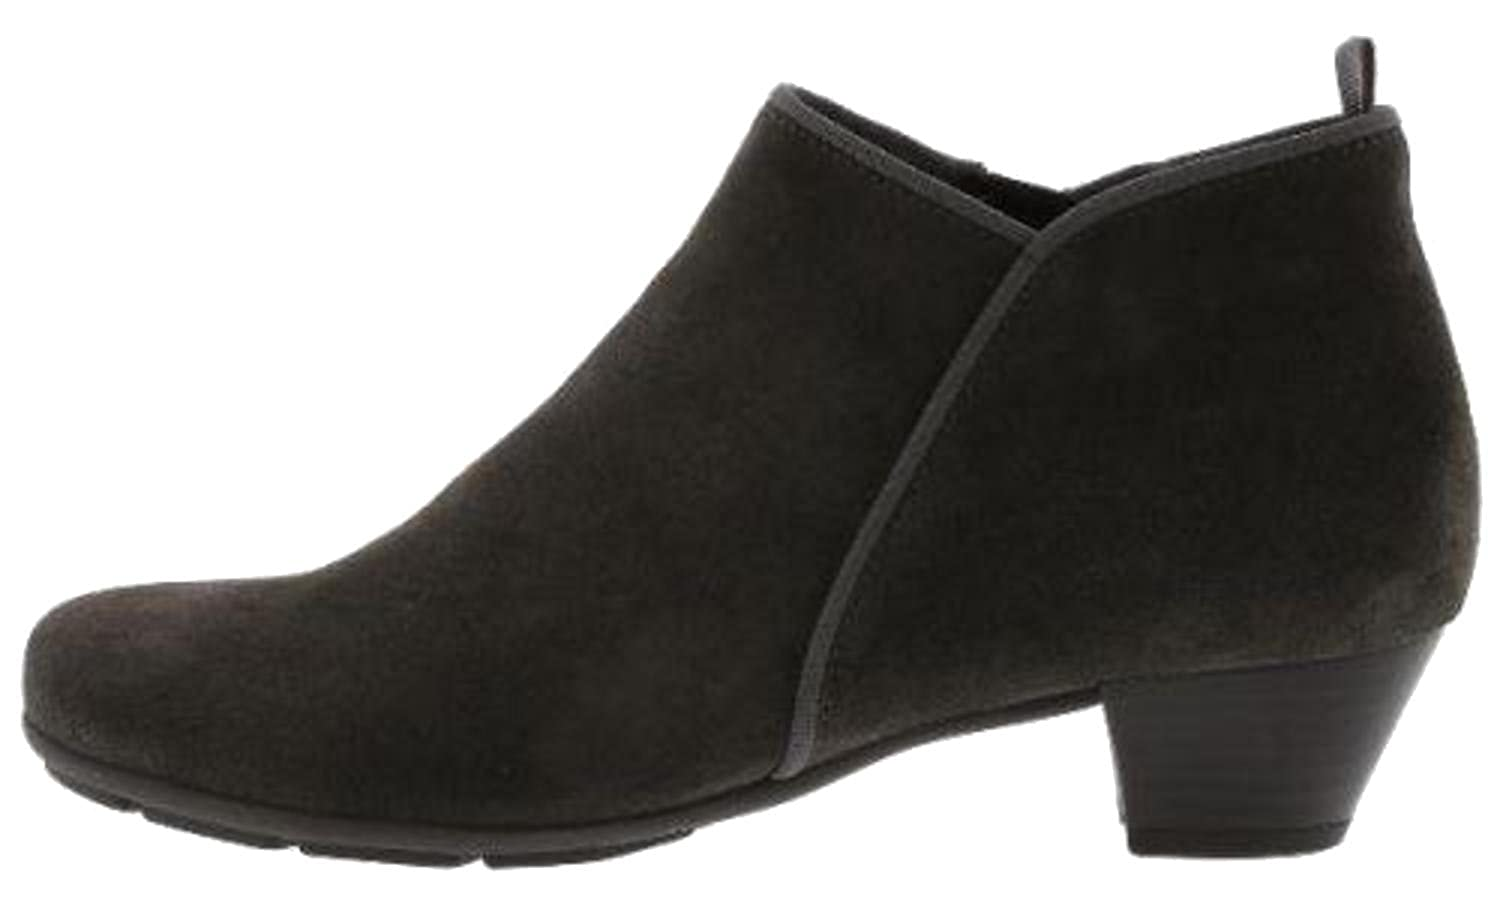 a392101a54e2 Gabor Trudy Mid Heel Ankle Boots in Black Leather  Amazon.co.uk  Shoes    Bags